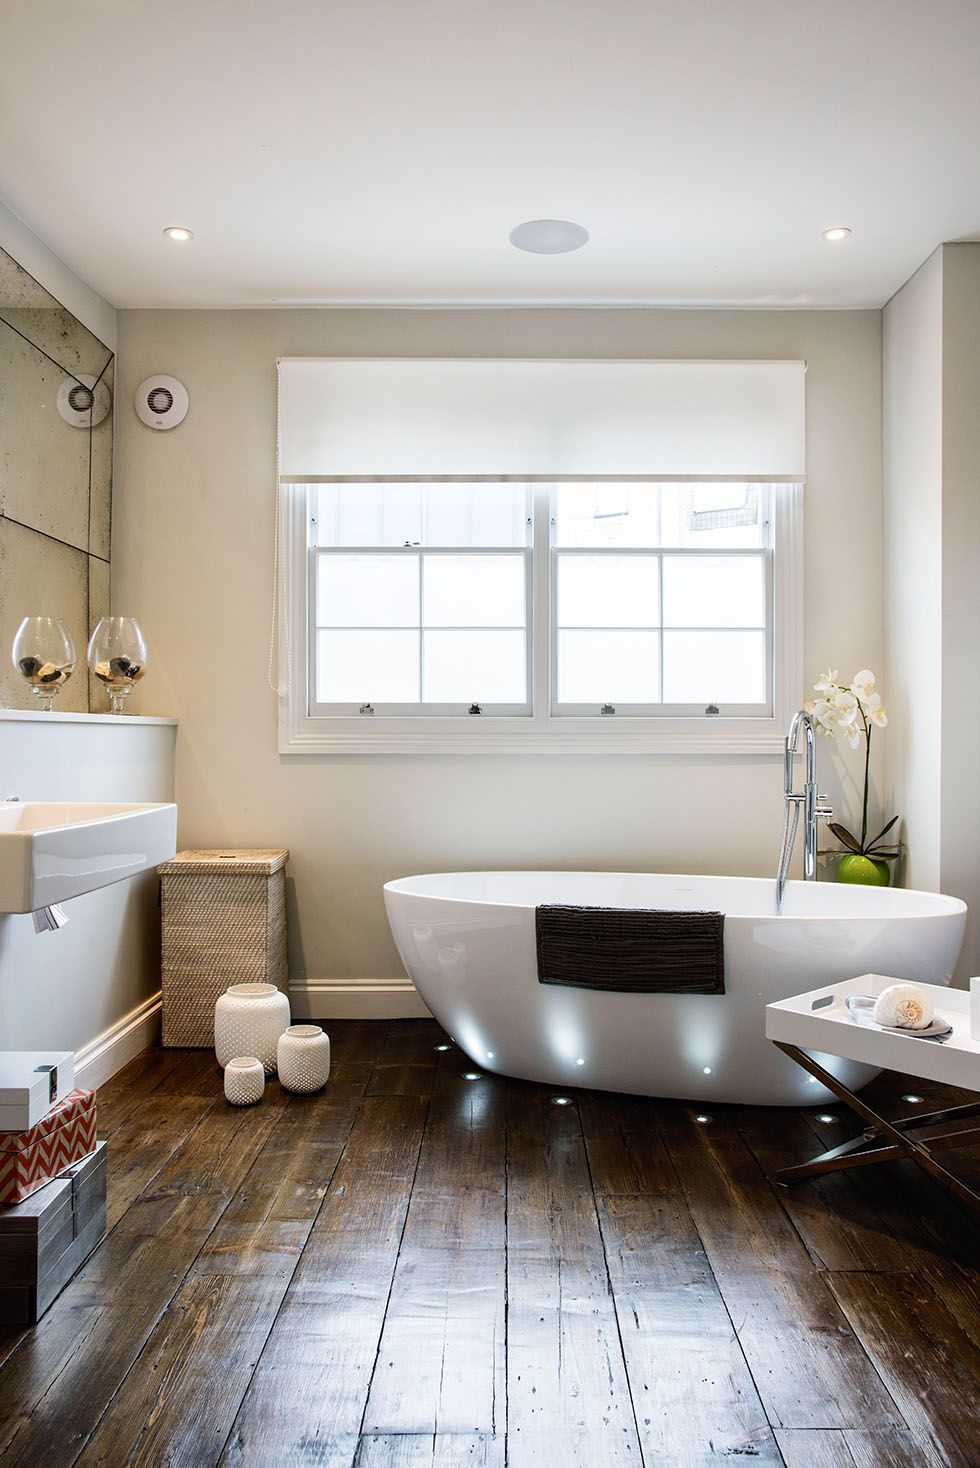 franklin-bathroom-lighting-wood-floor | Draytons | Pinterest ...